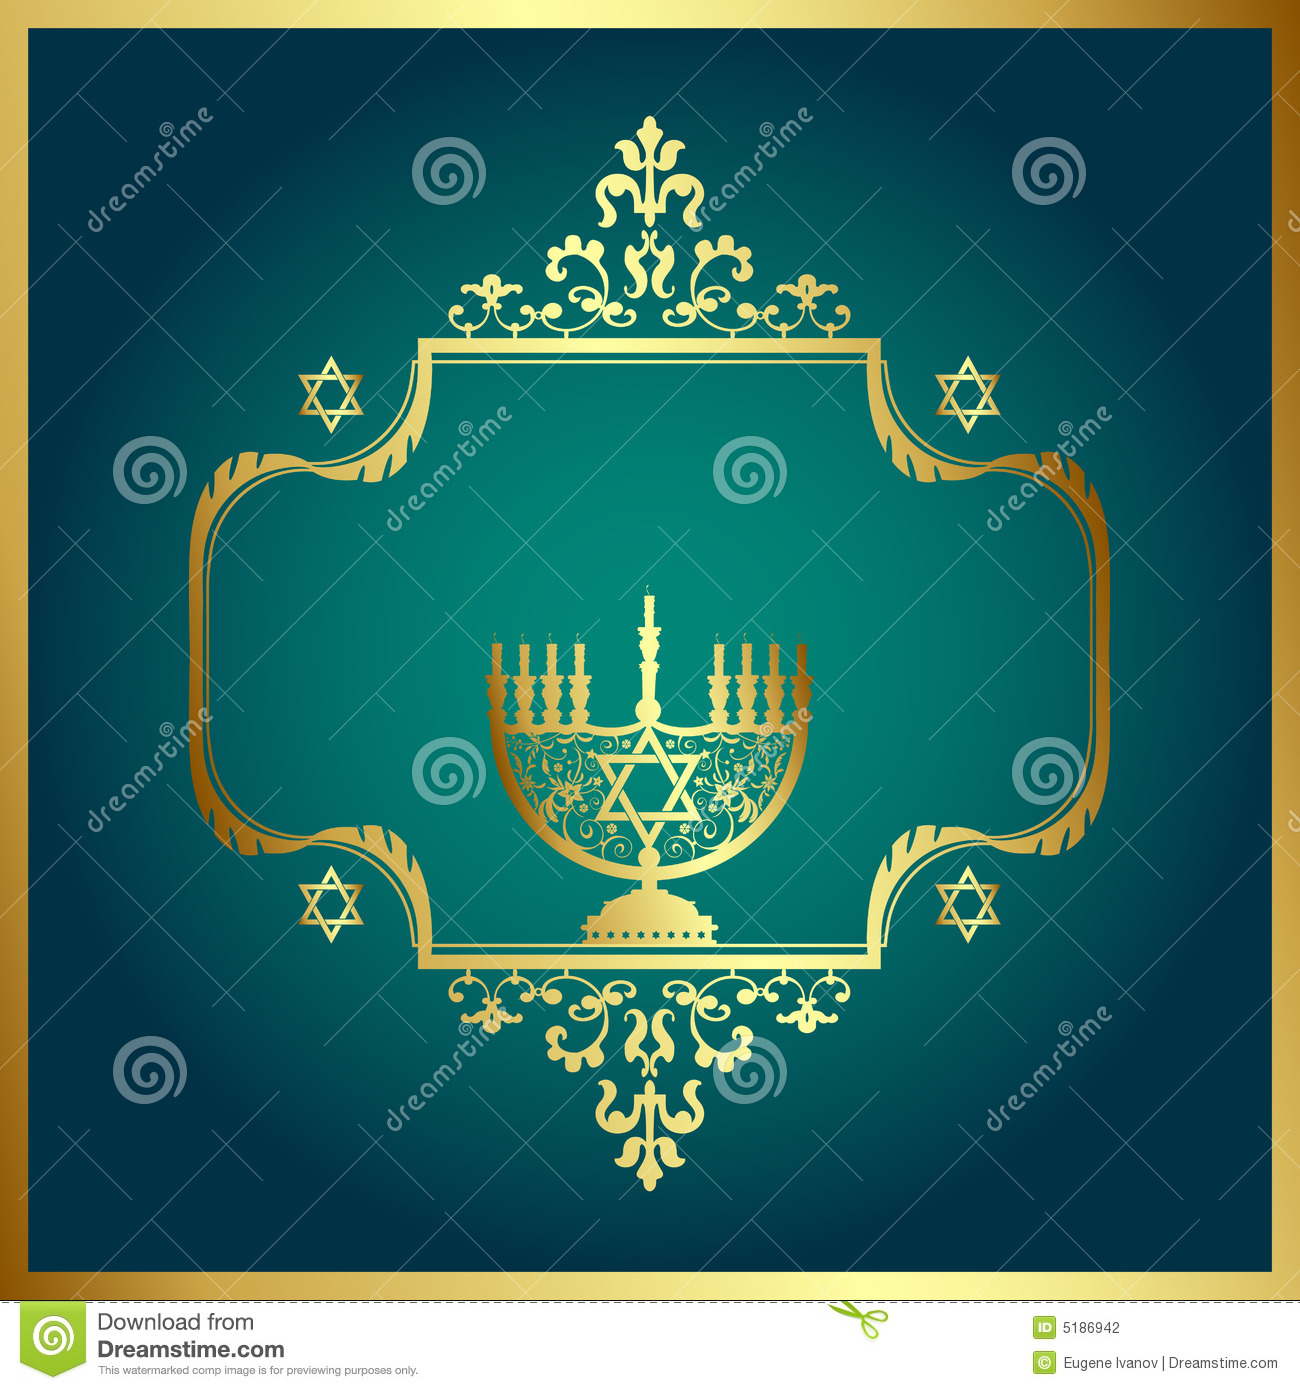 Floral Background with Menorah